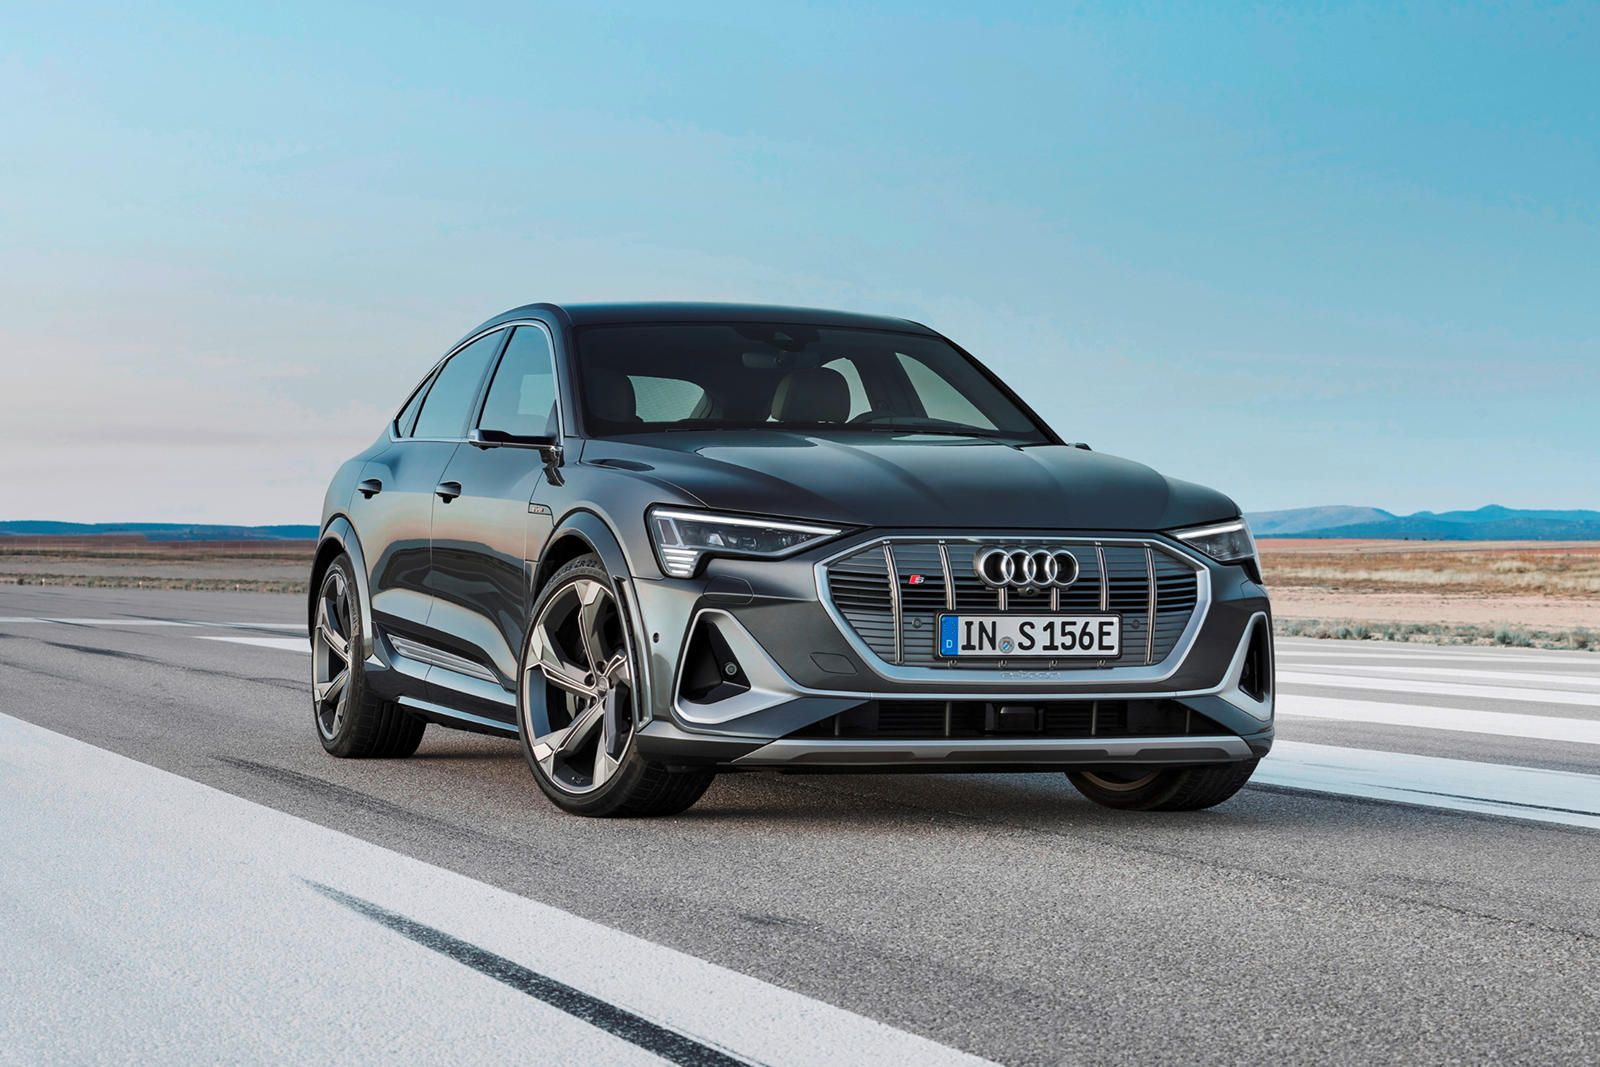 2021 Audi E Tron S Sportback First Look Review Power And Style The Tesla Model What In 2020 Audi E Tron E Tron Audi